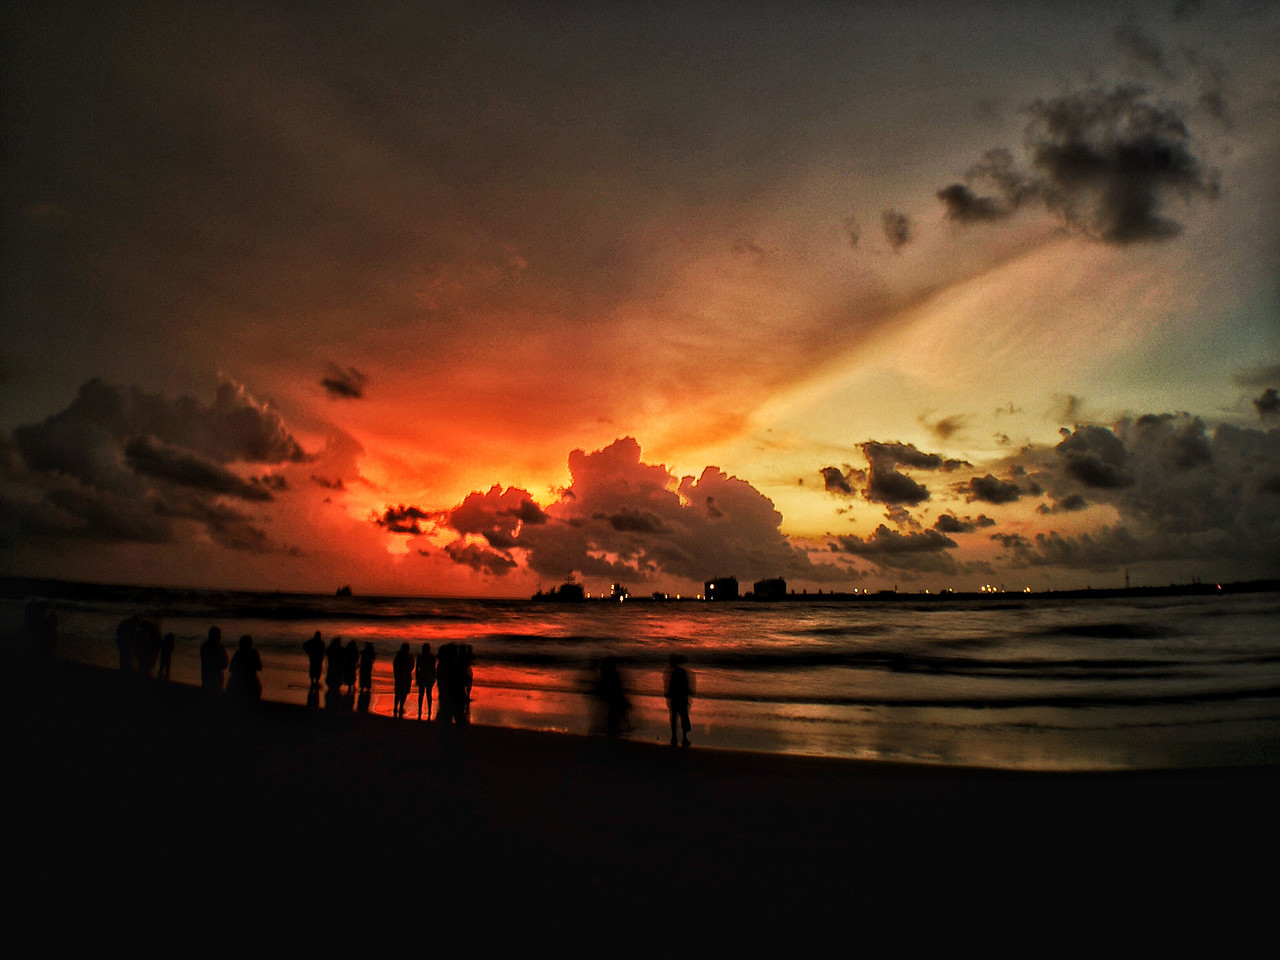 Sunset at the beach in Fort Kochi, Kerala